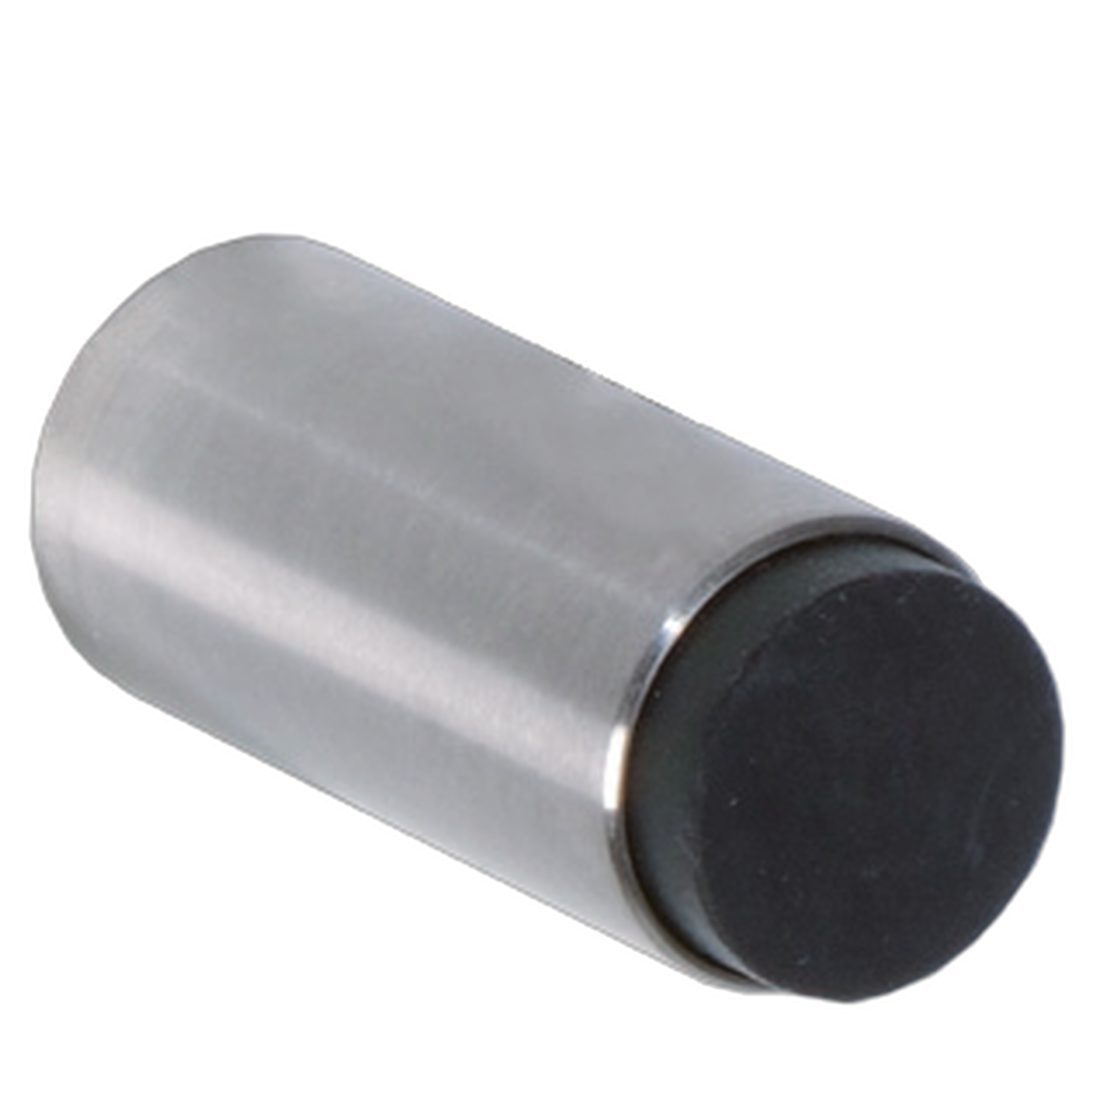 DOOR STOPPER FOR WALL MOUNTING, ø 22MM, L: 90MM, THEFT HINDER